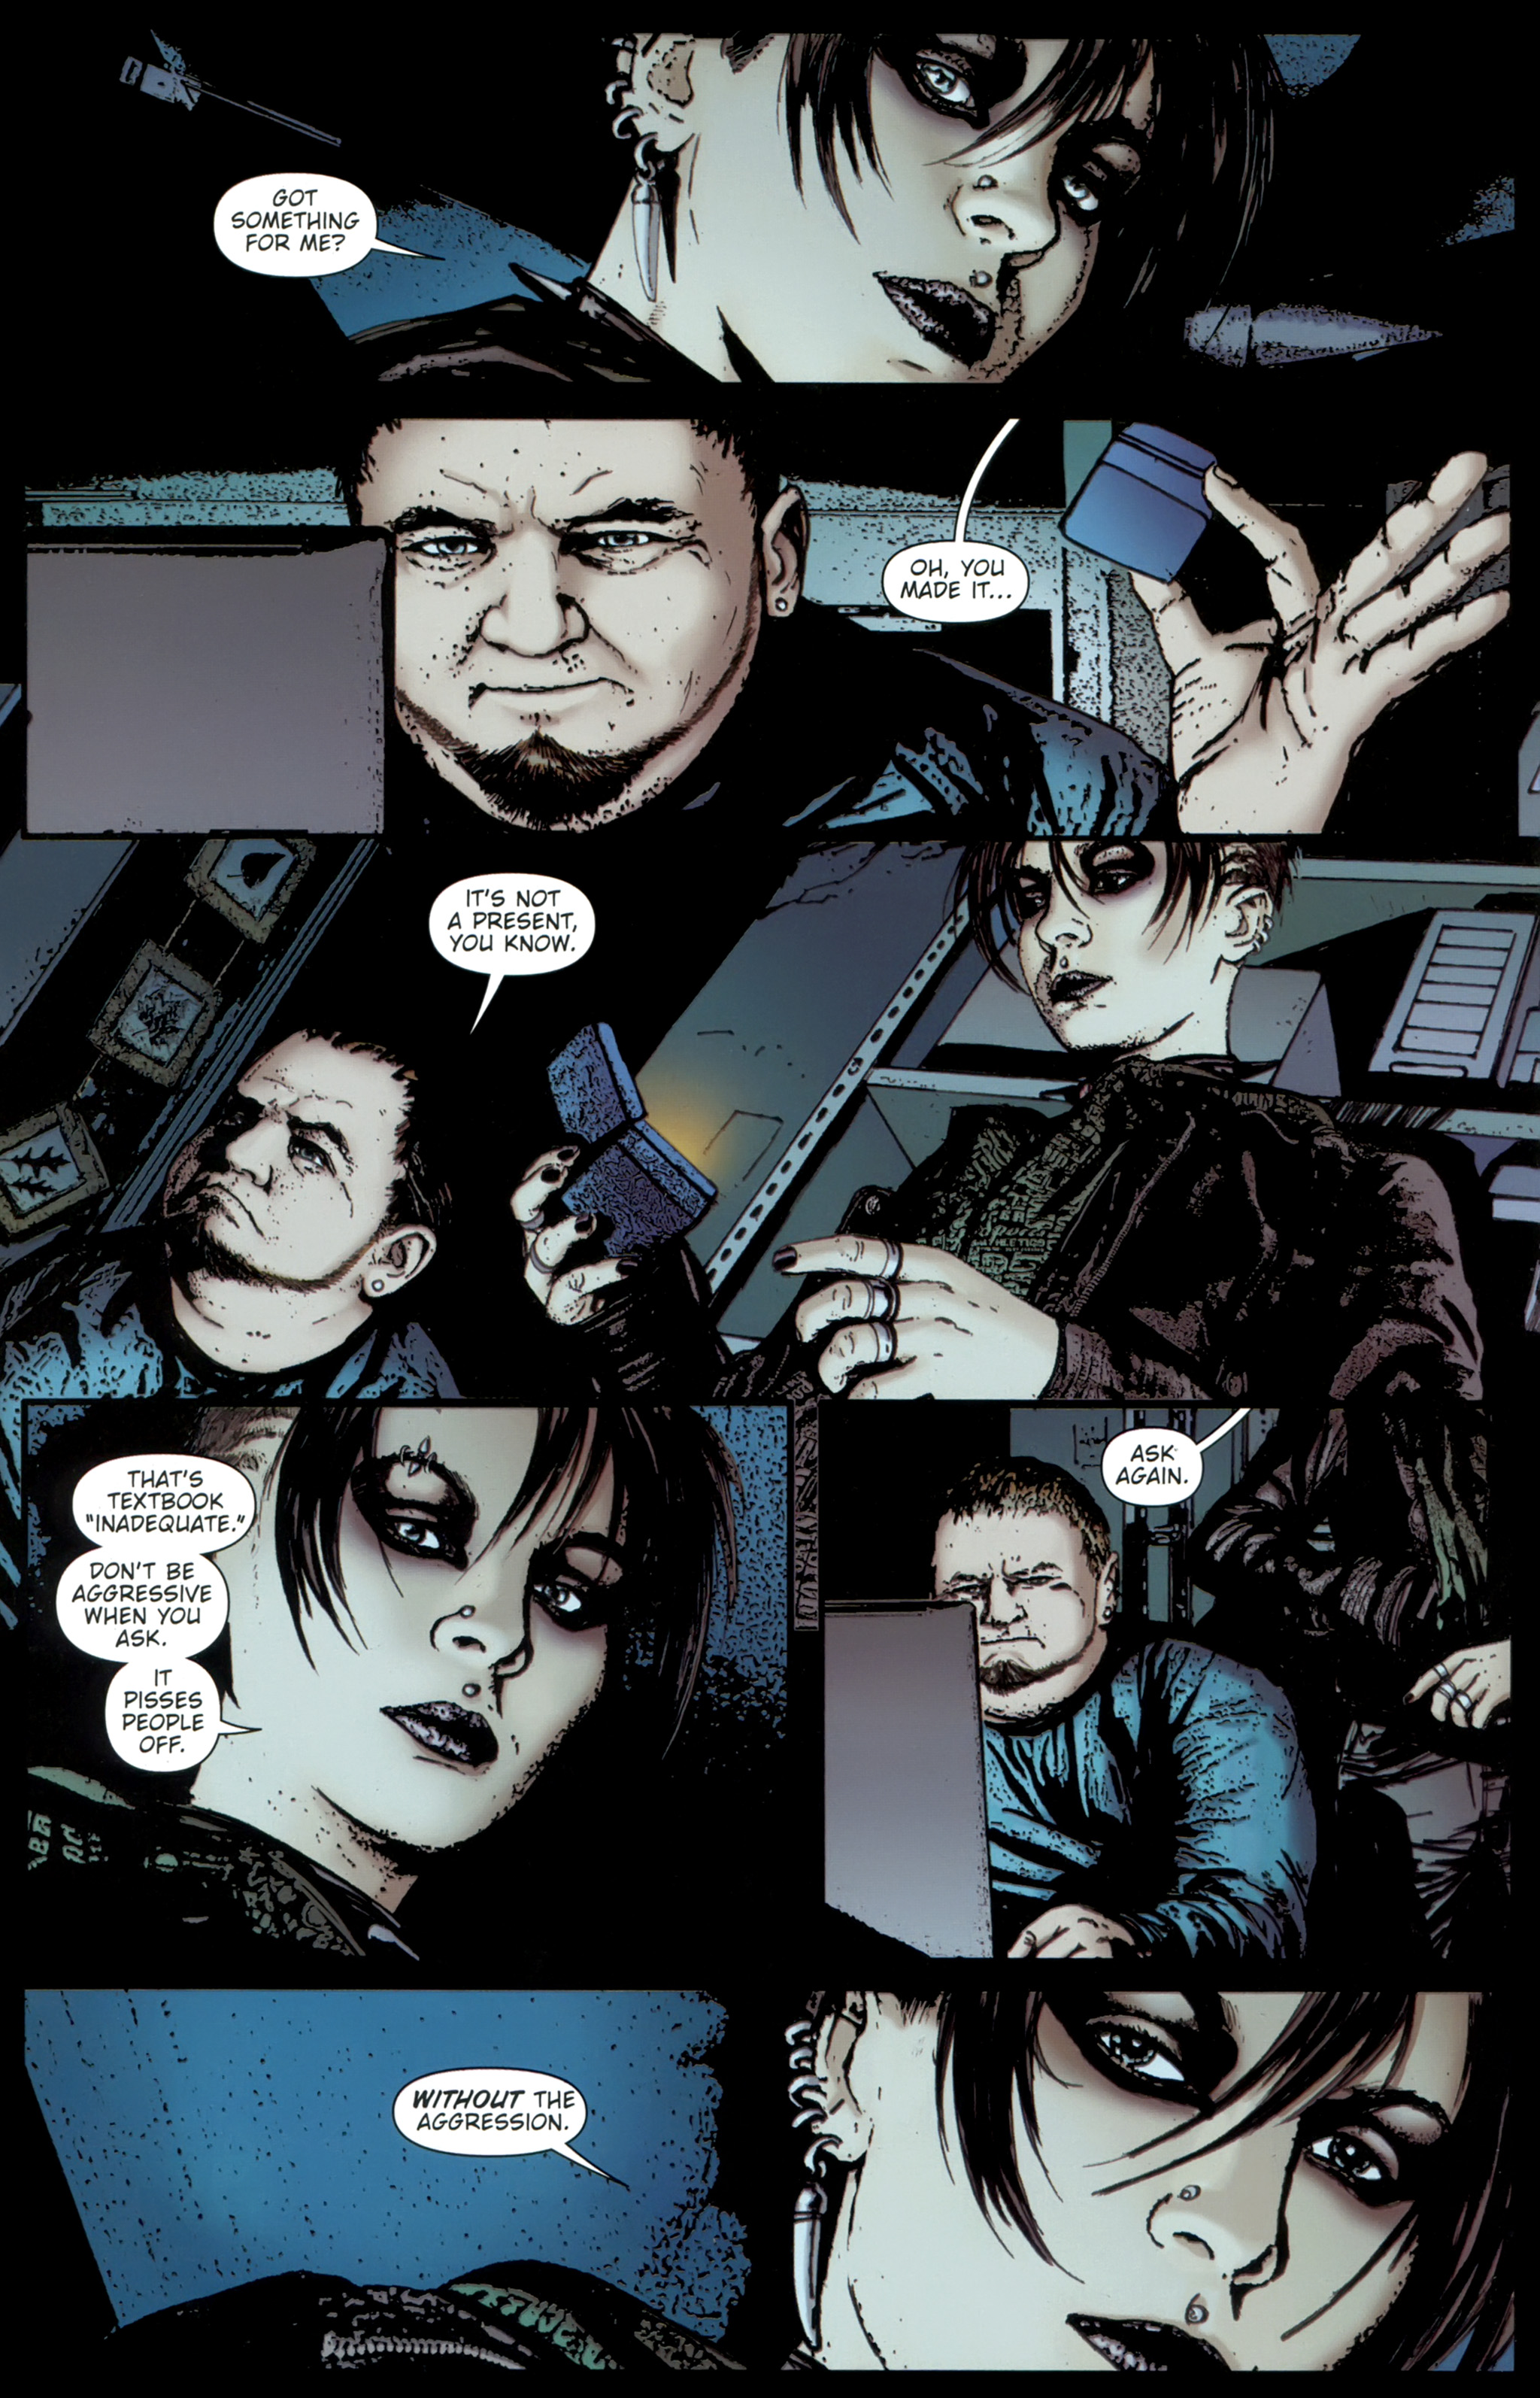 Read online The Girl With the Dragon Tattoo comic -  Issue # TPB 1 - 63